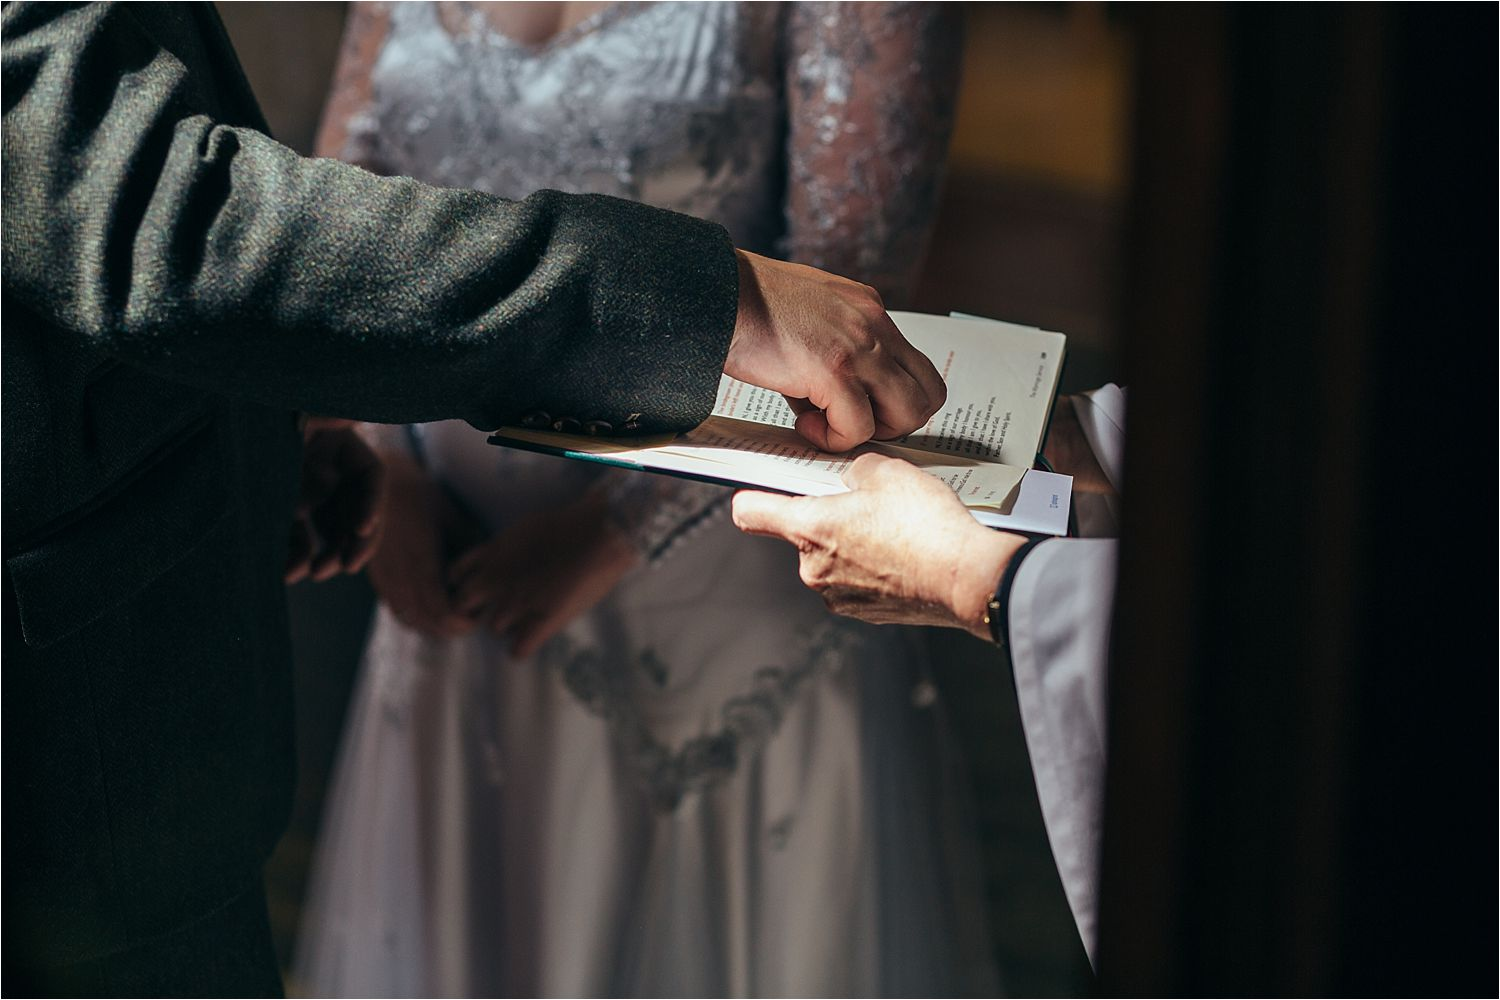 Best man places rings on hymn book during wedding ceremony in Bedfordshire